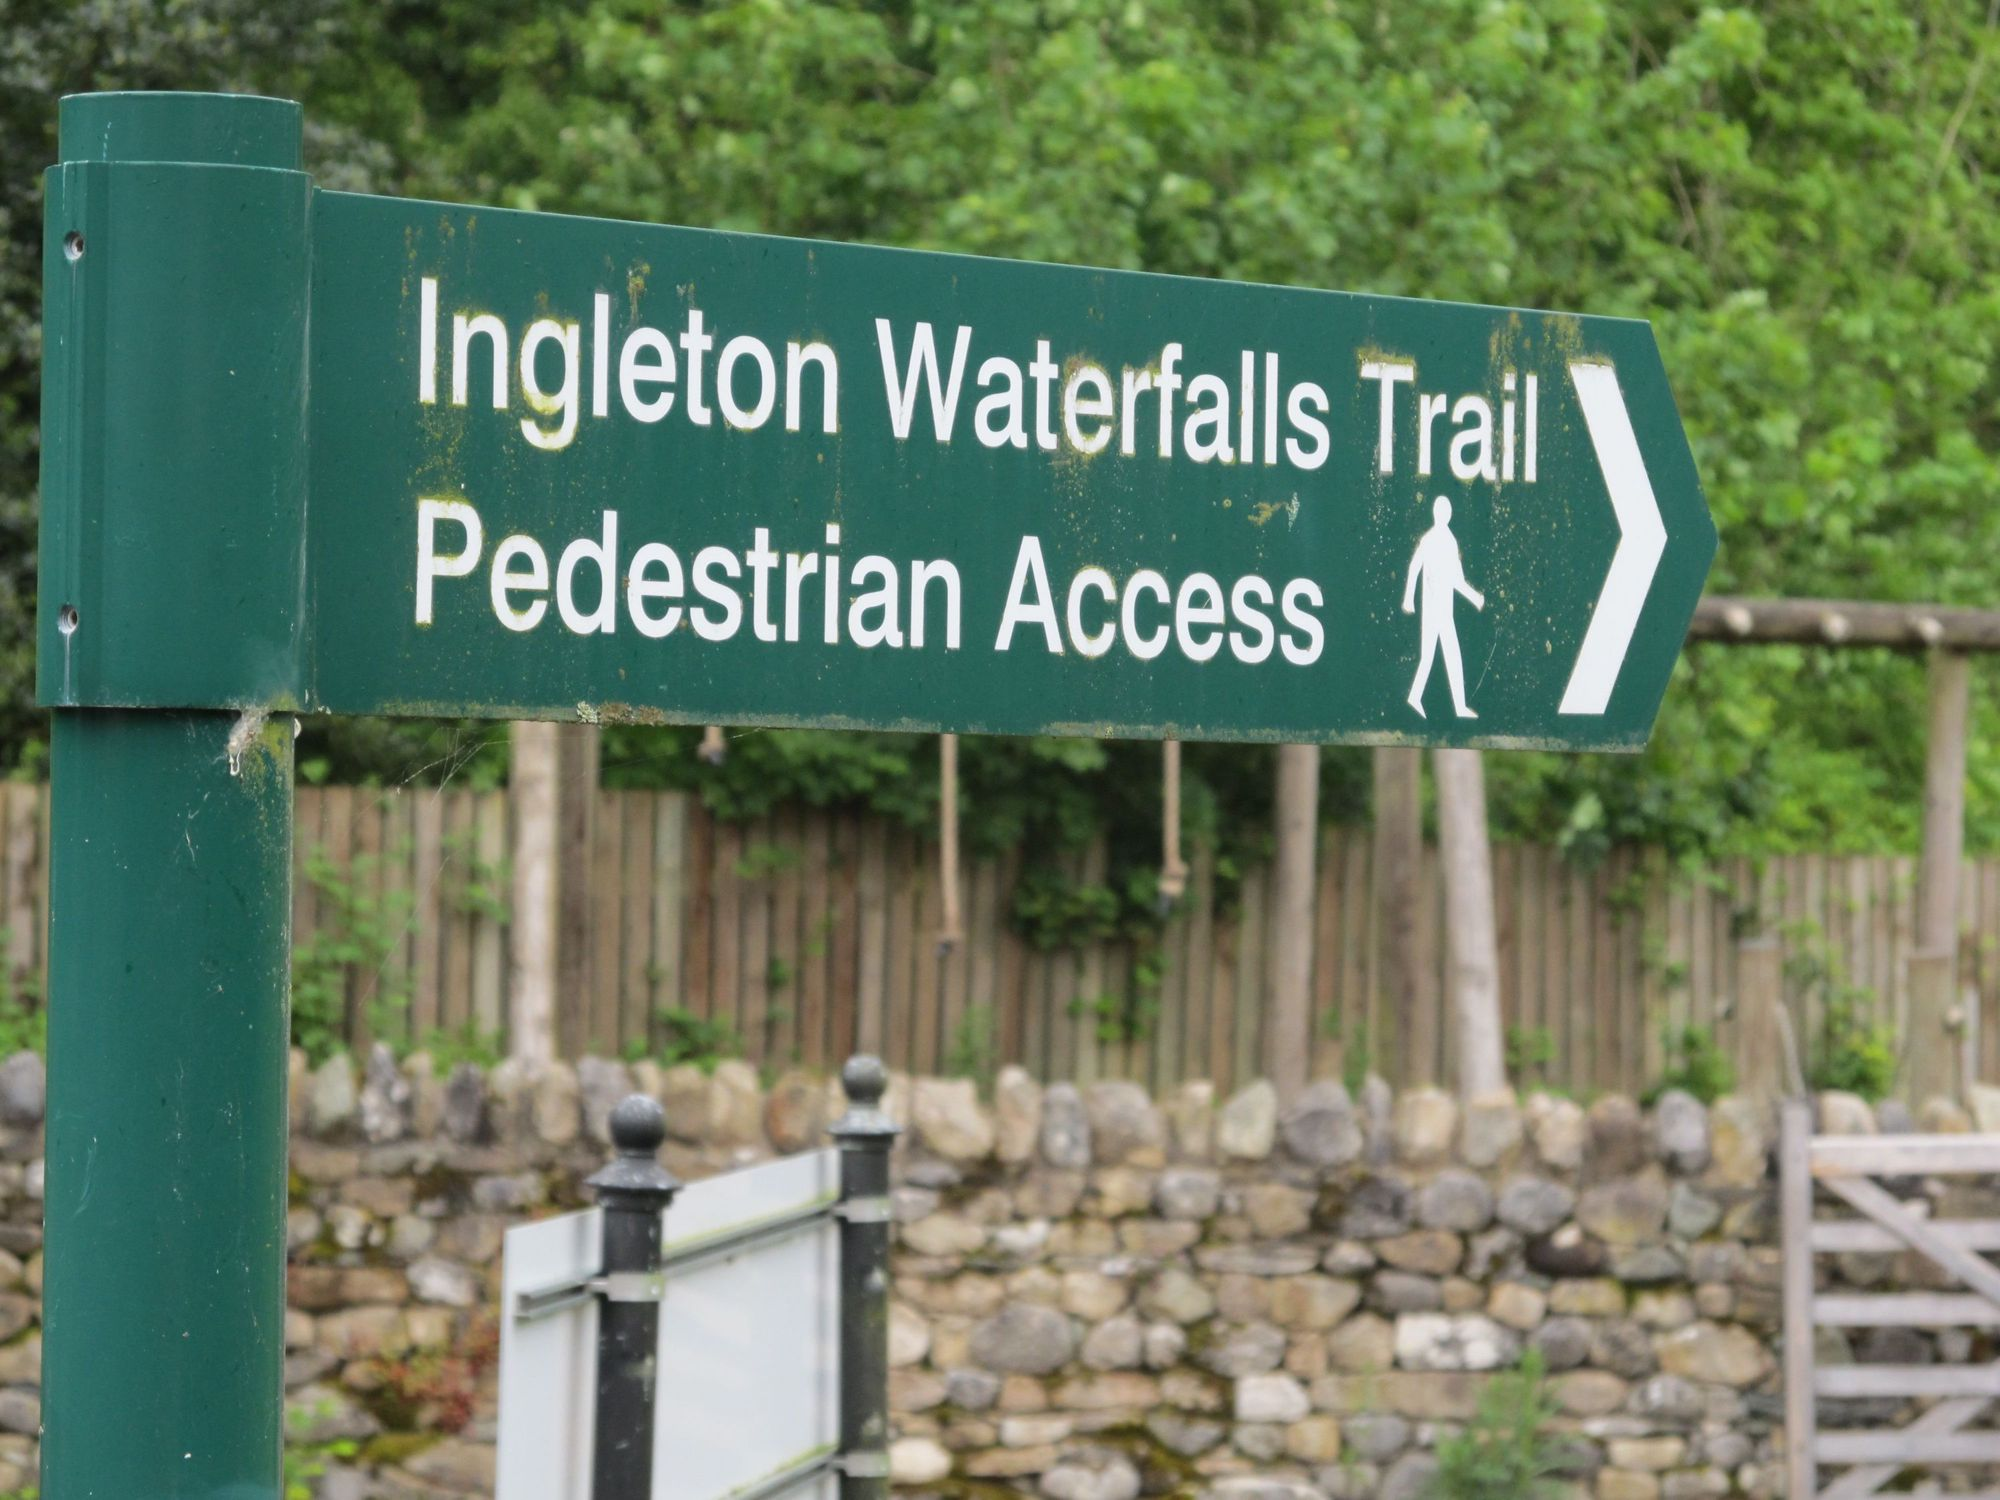 Ingleton Waterfalls Trail